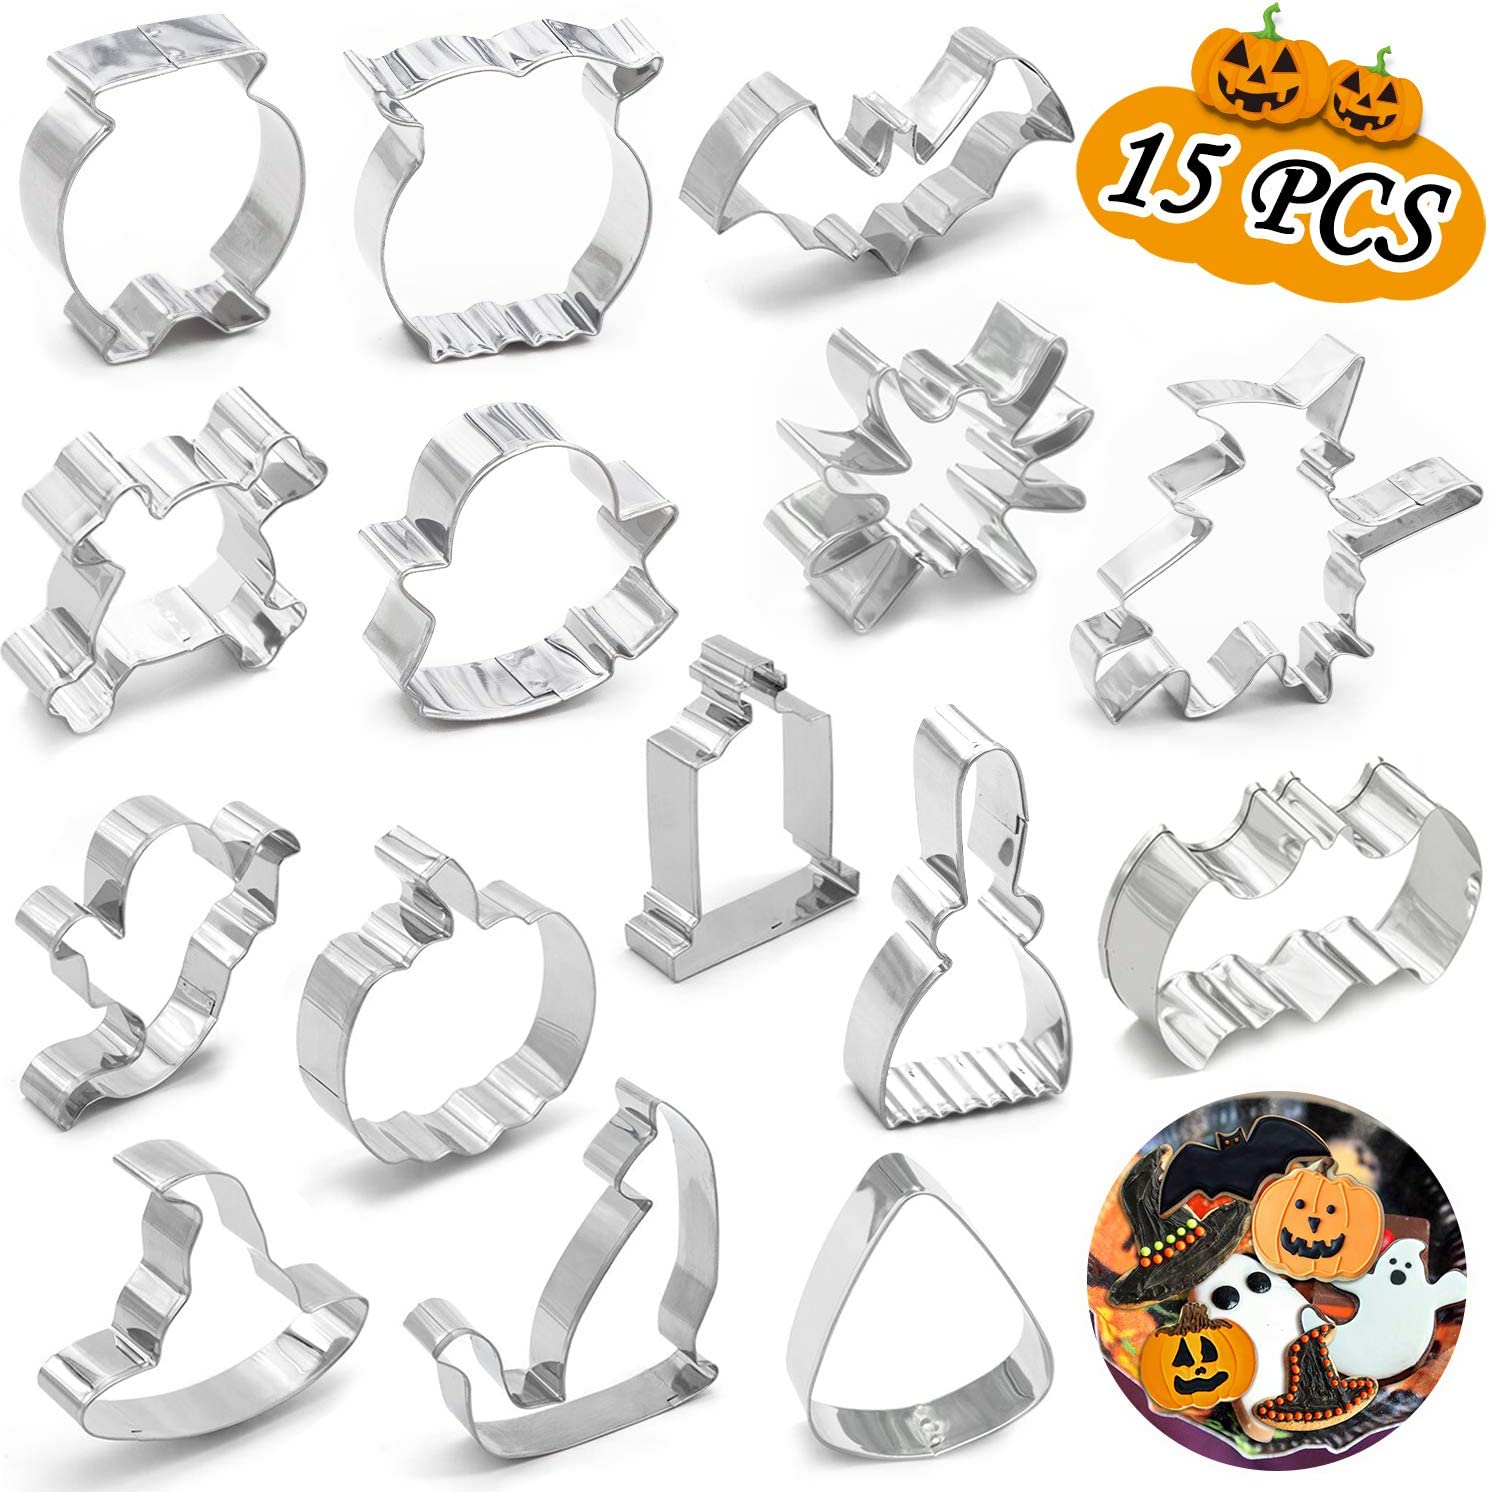 15PCS Halloween Cookie Cutters - Pumpkin,Witch,Bat,Ghost,Cat,Tombstone,Spider, Skull,Candy Corn, Owl,Hat,Cauldron,Broom Party Decorations Trick or Treat Supplies